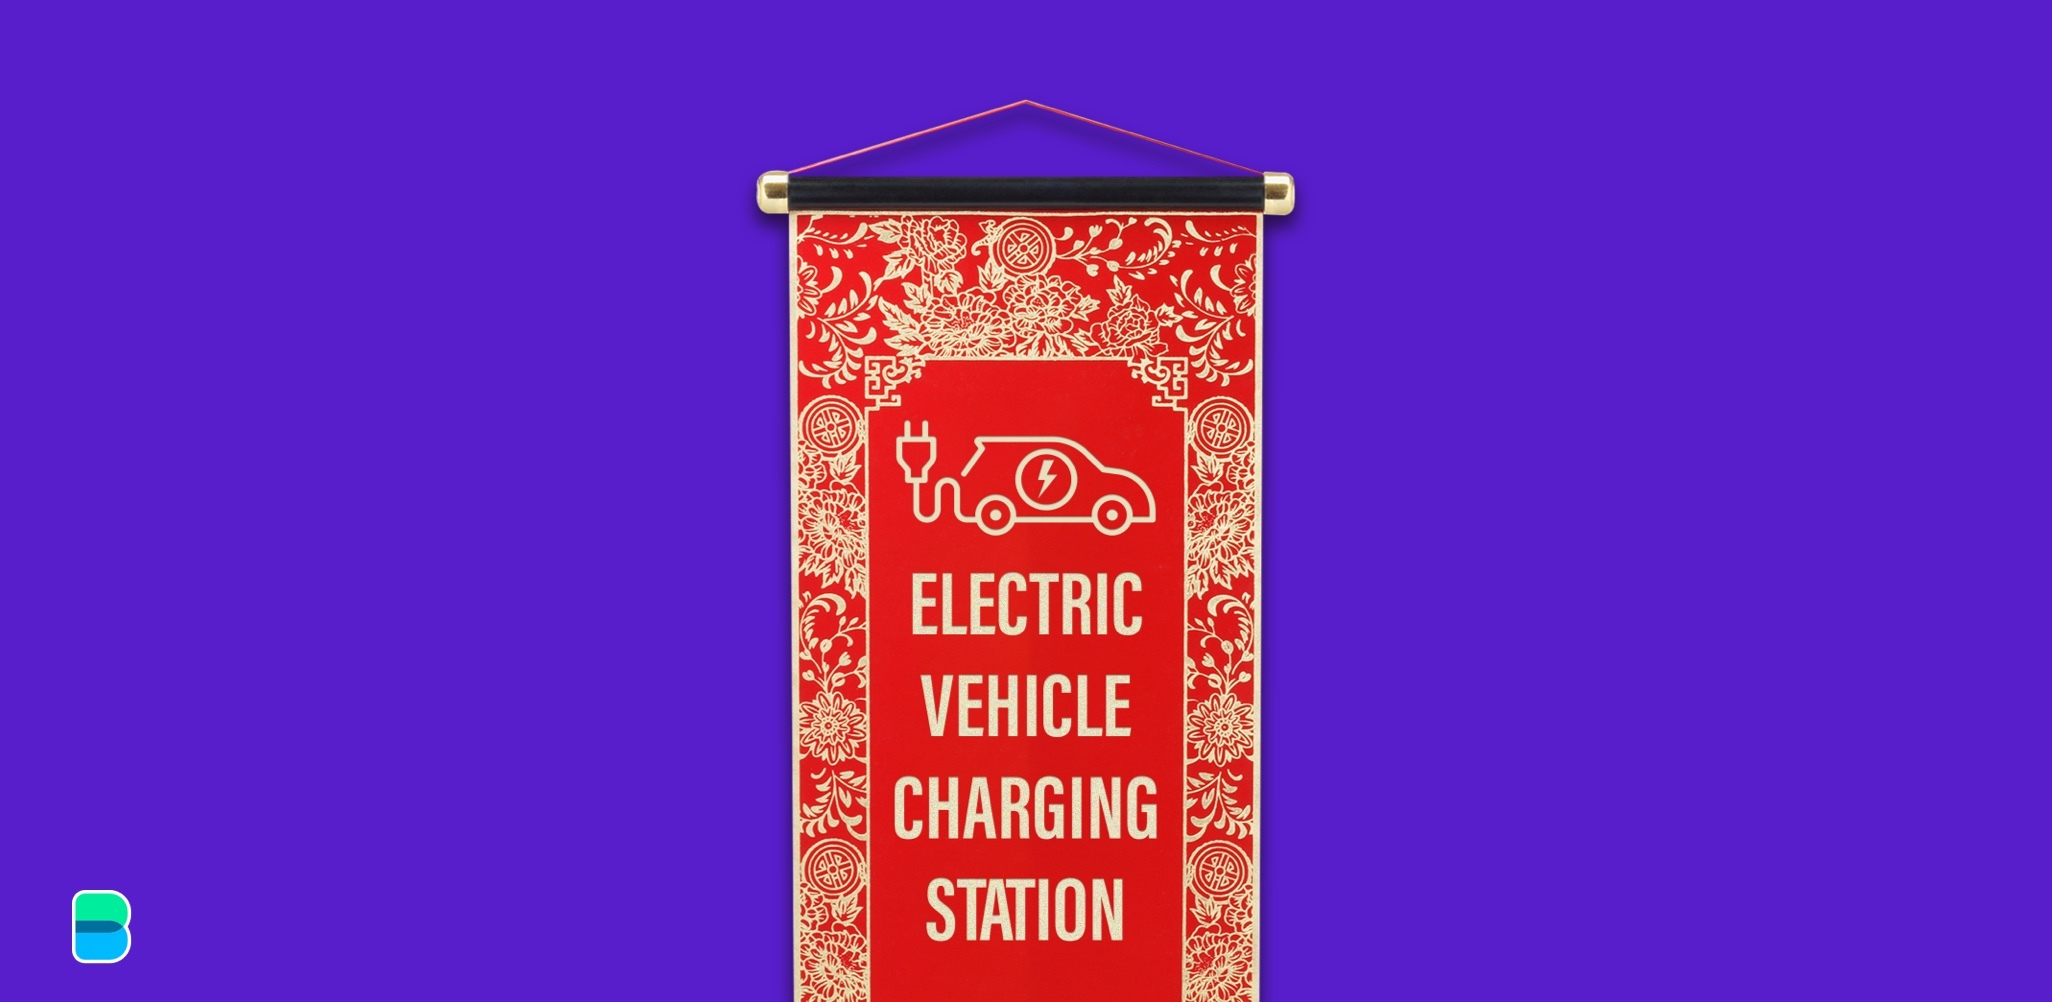 Bigger is better when it comes to EV companies in China